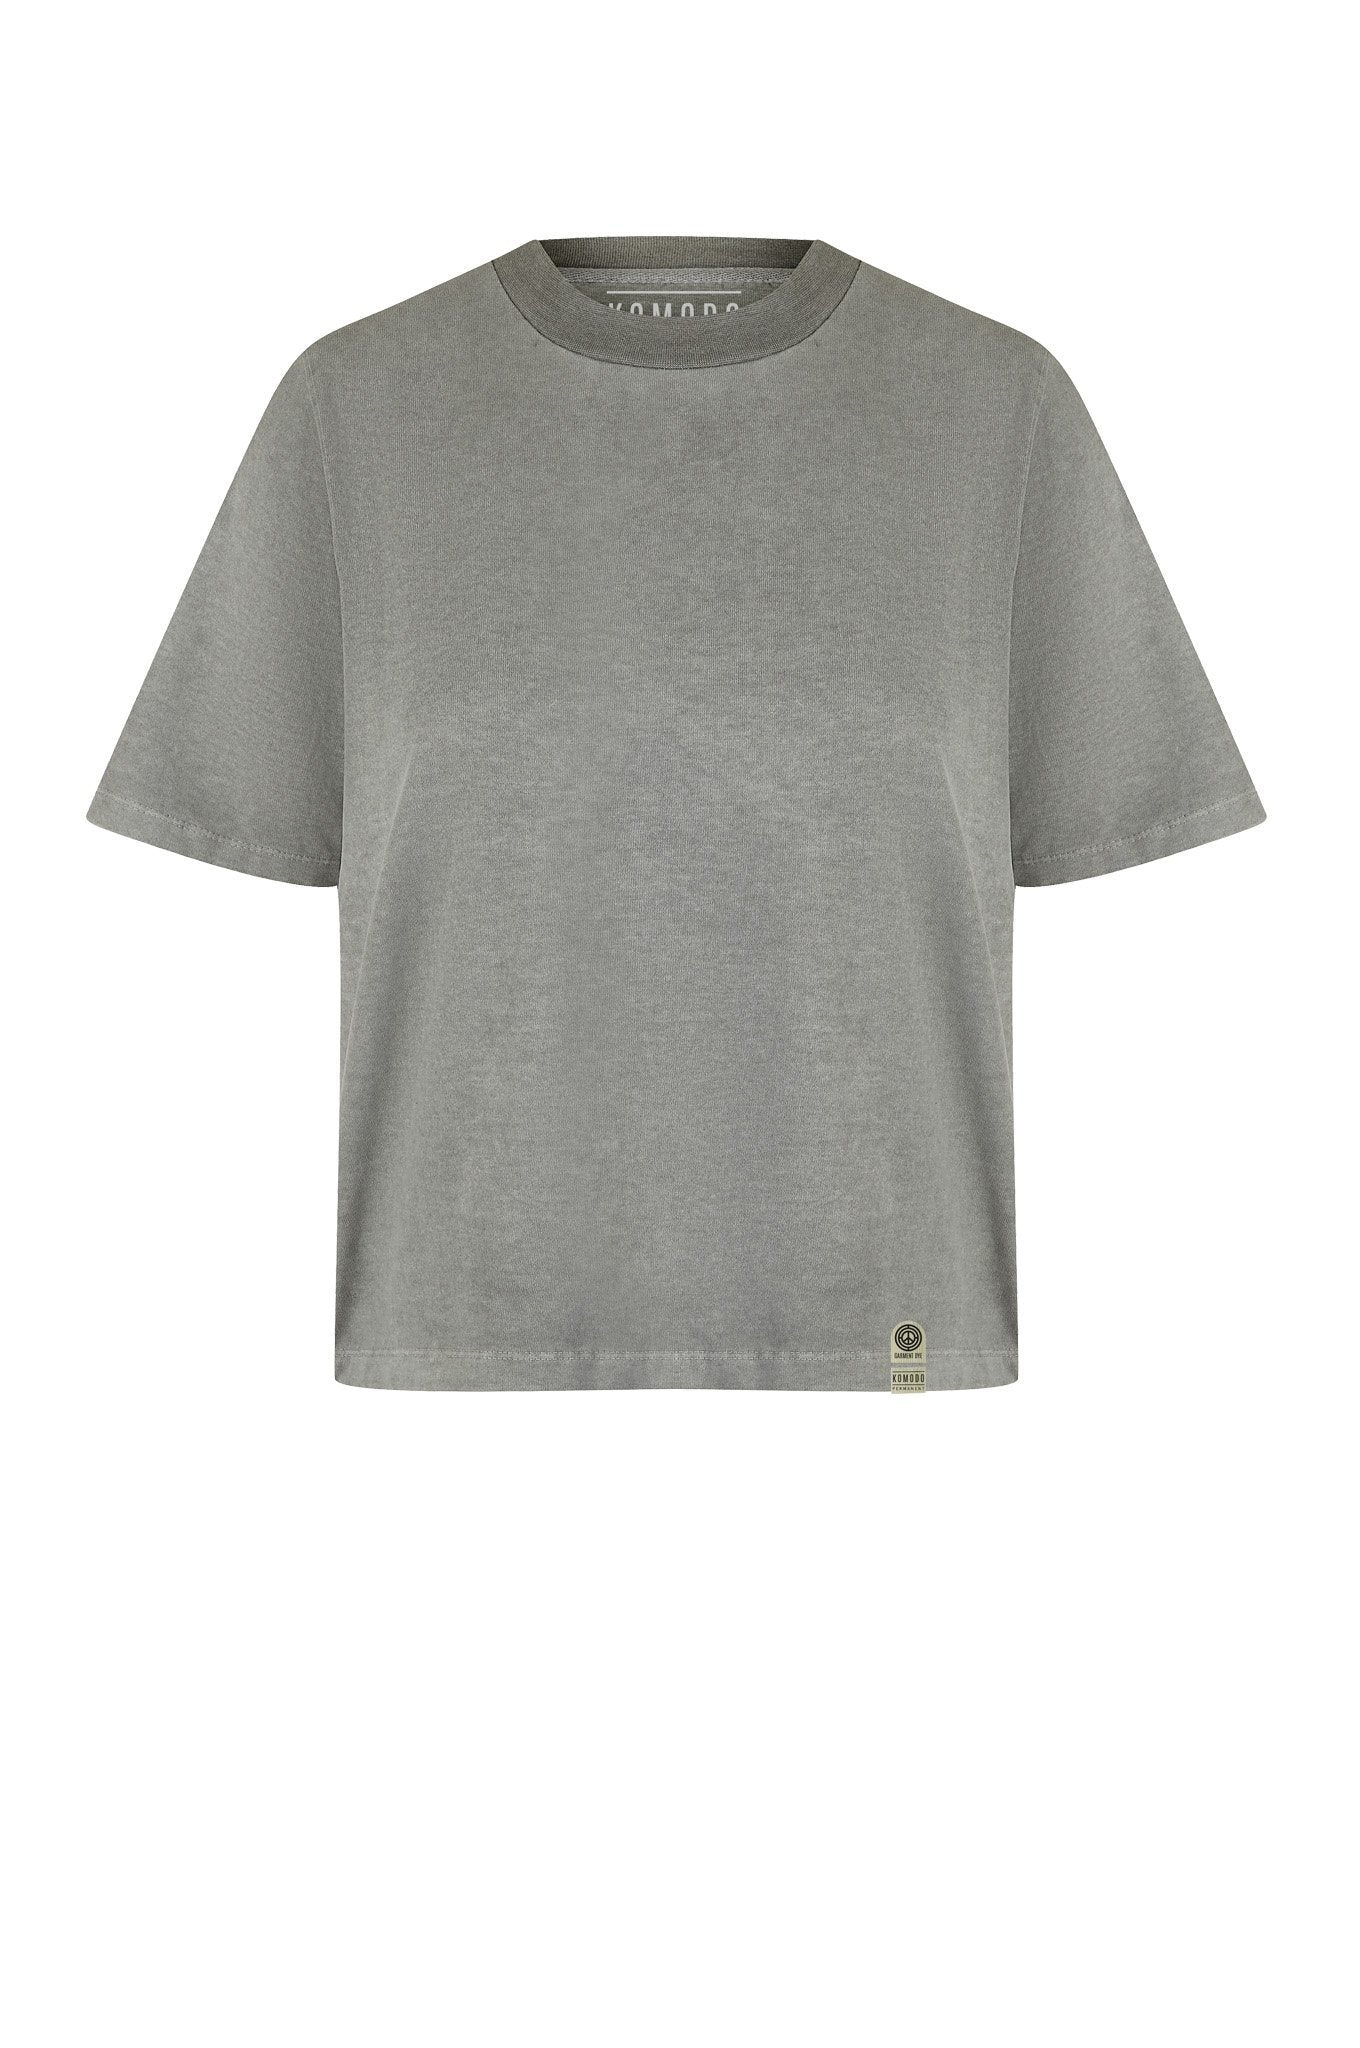 T-Shirt - INGA Organic Cotton T-Shirt